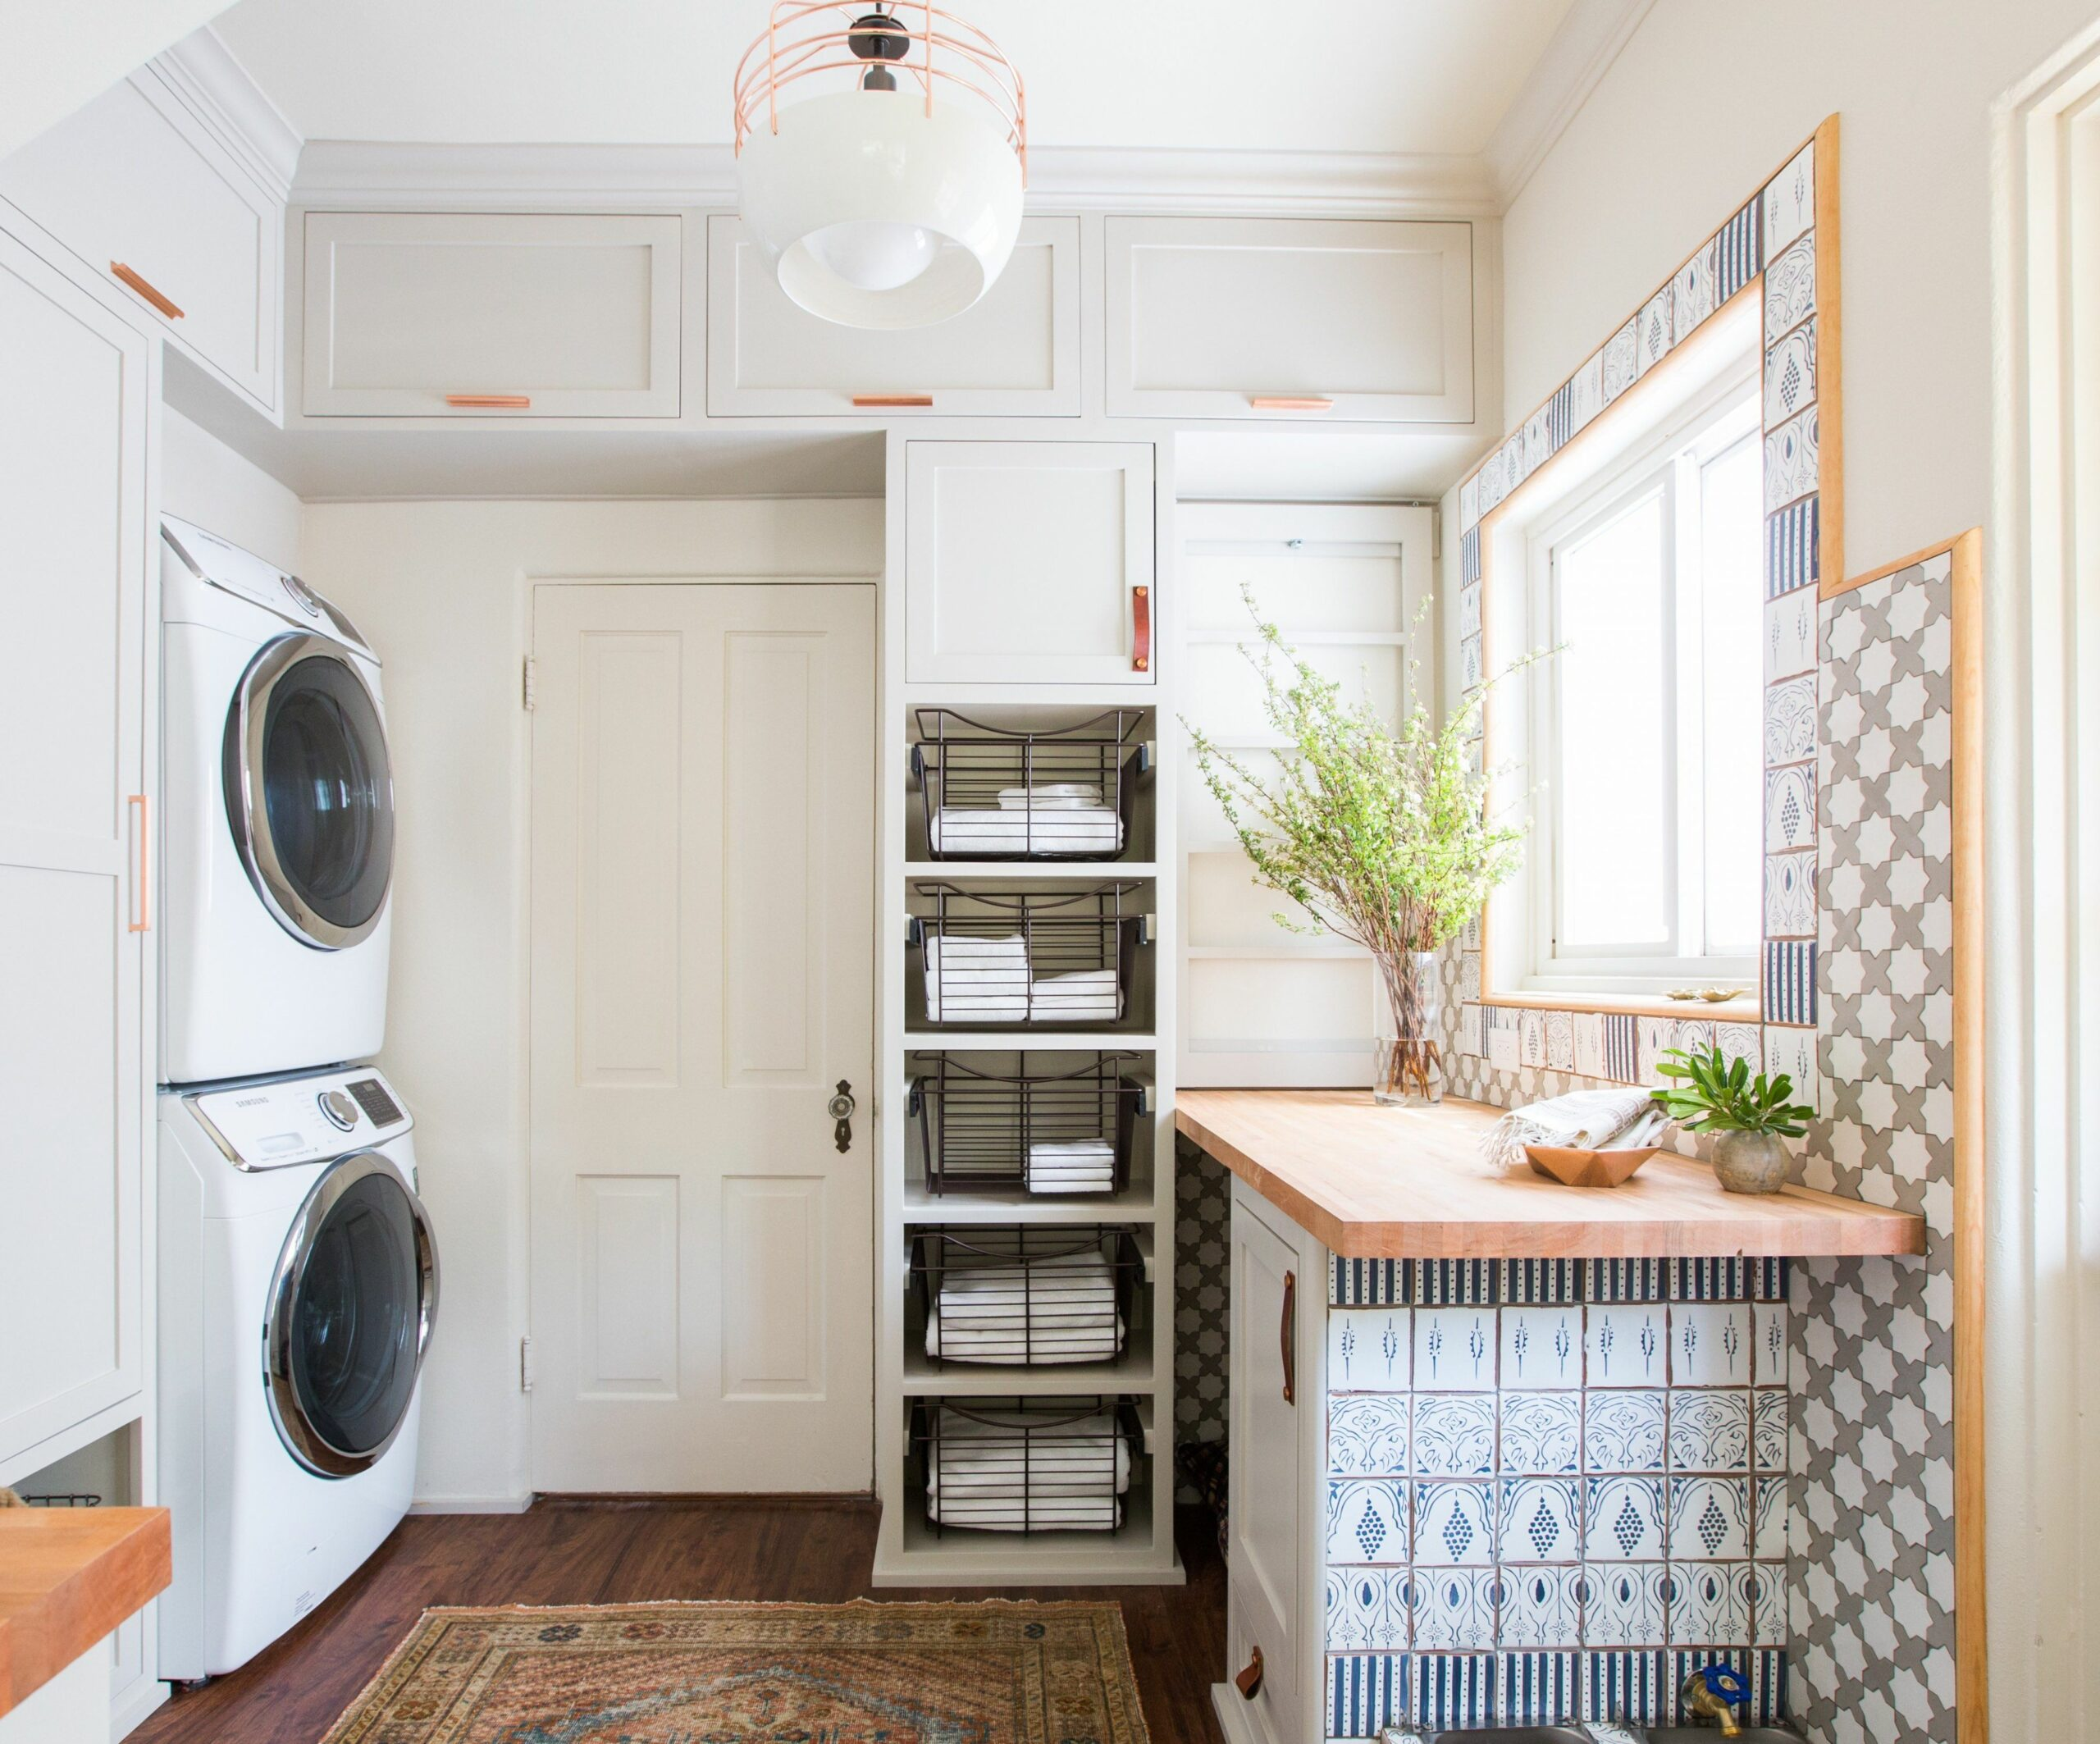 8 Best Laundry Rooms - Lovely & Functional Laundry Room Ideas